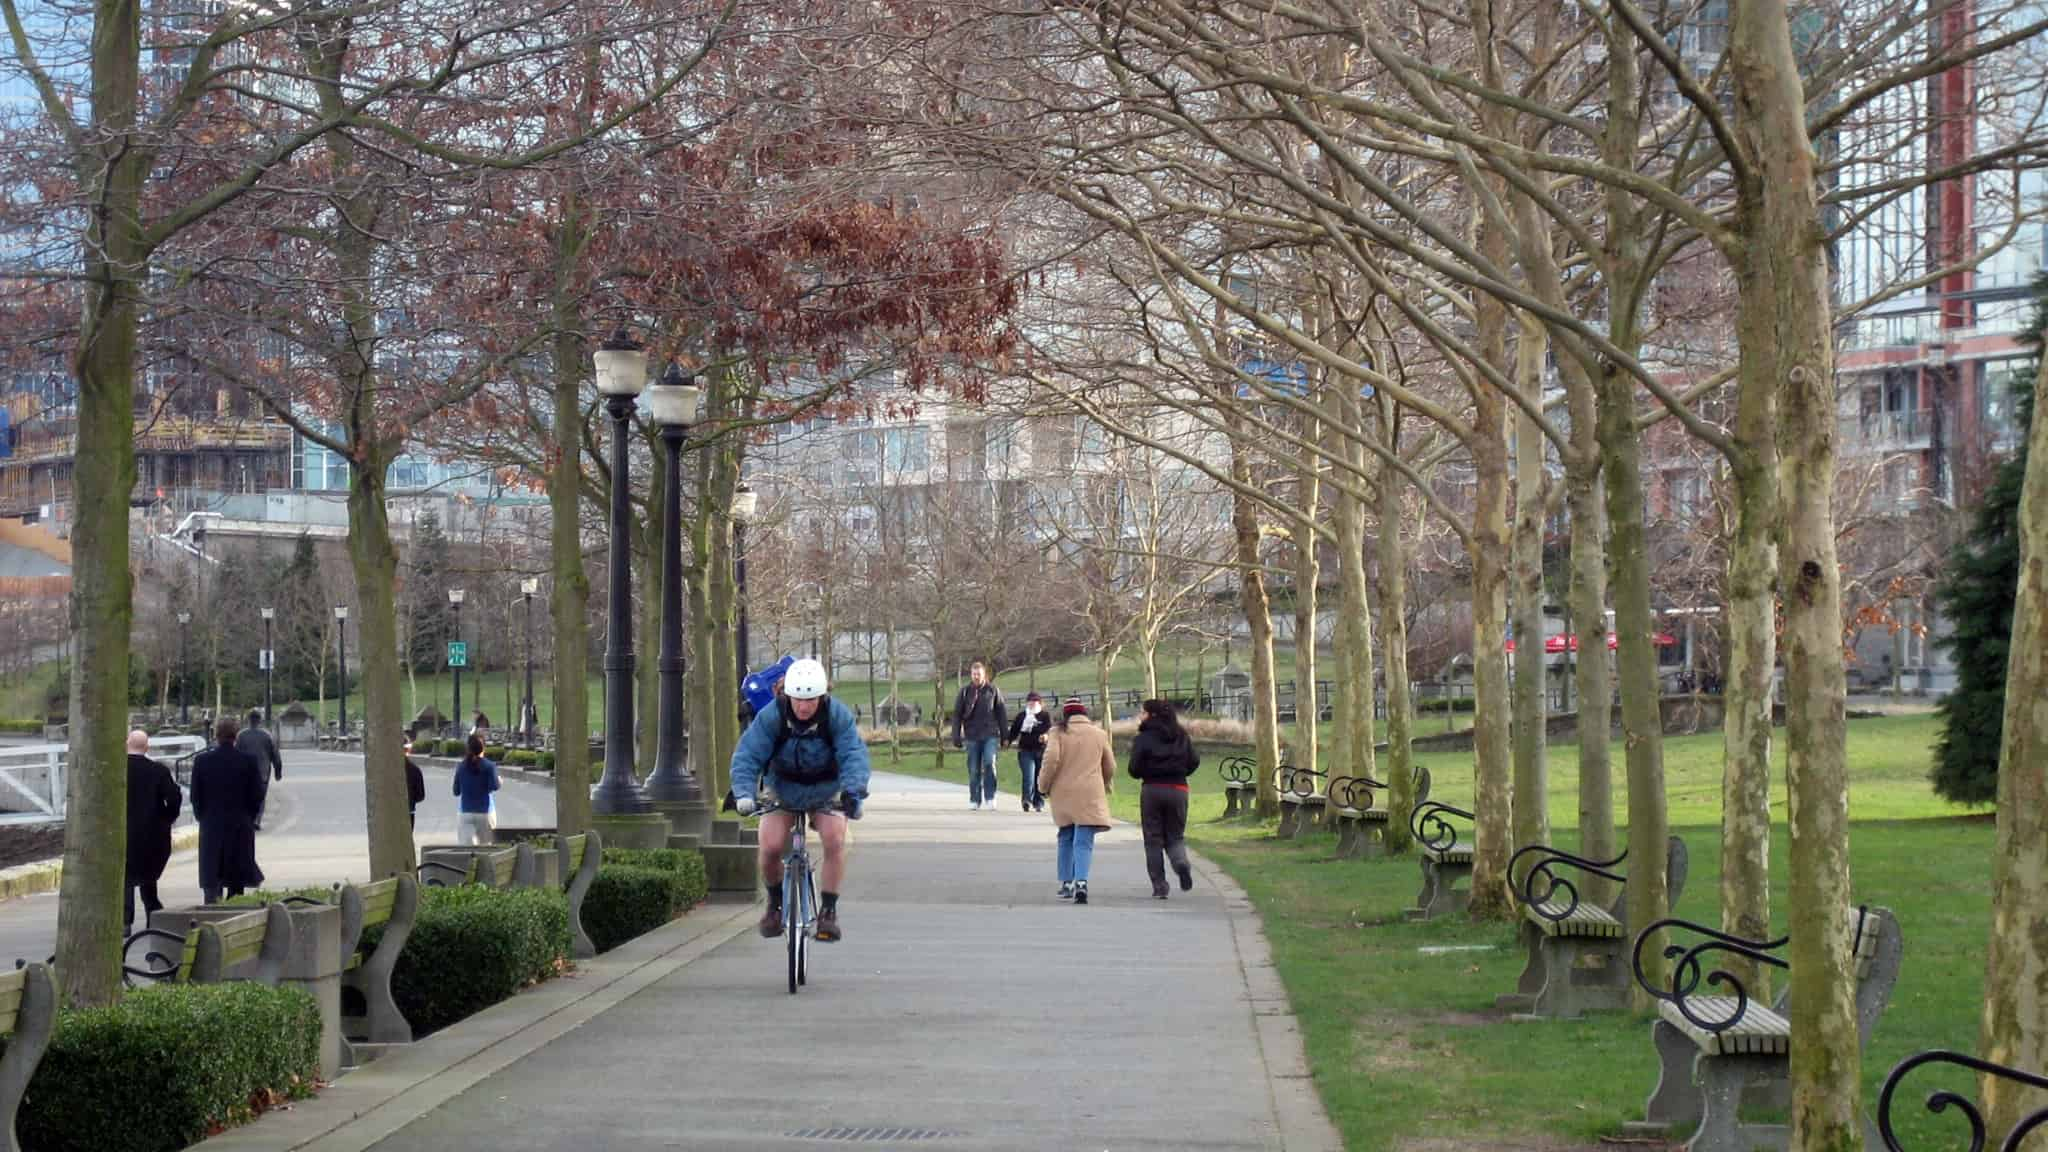 cycling through park on former brownfields